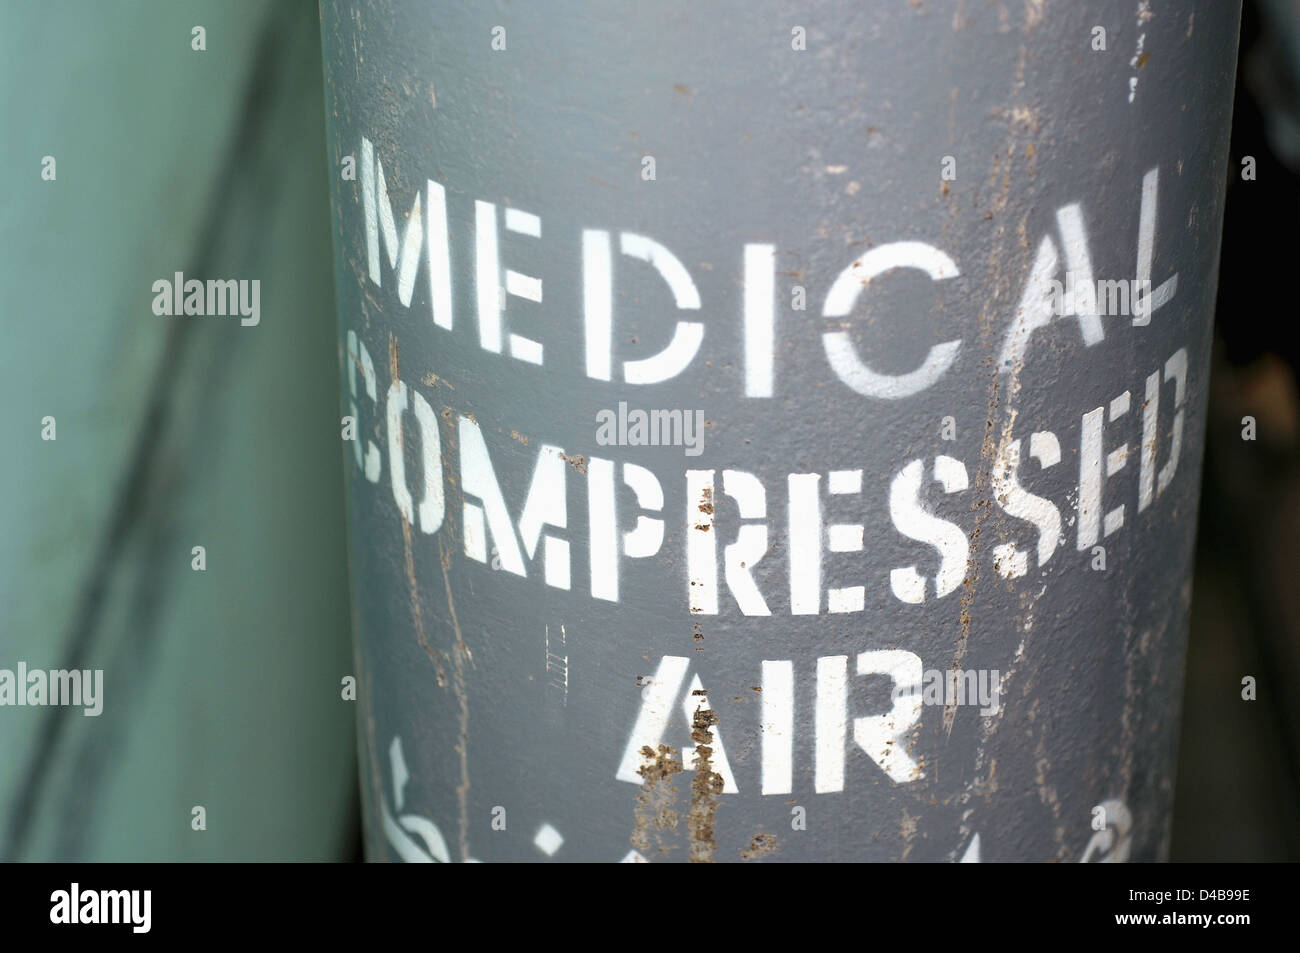 Medical compressed air (Oxygen) - Stock Image